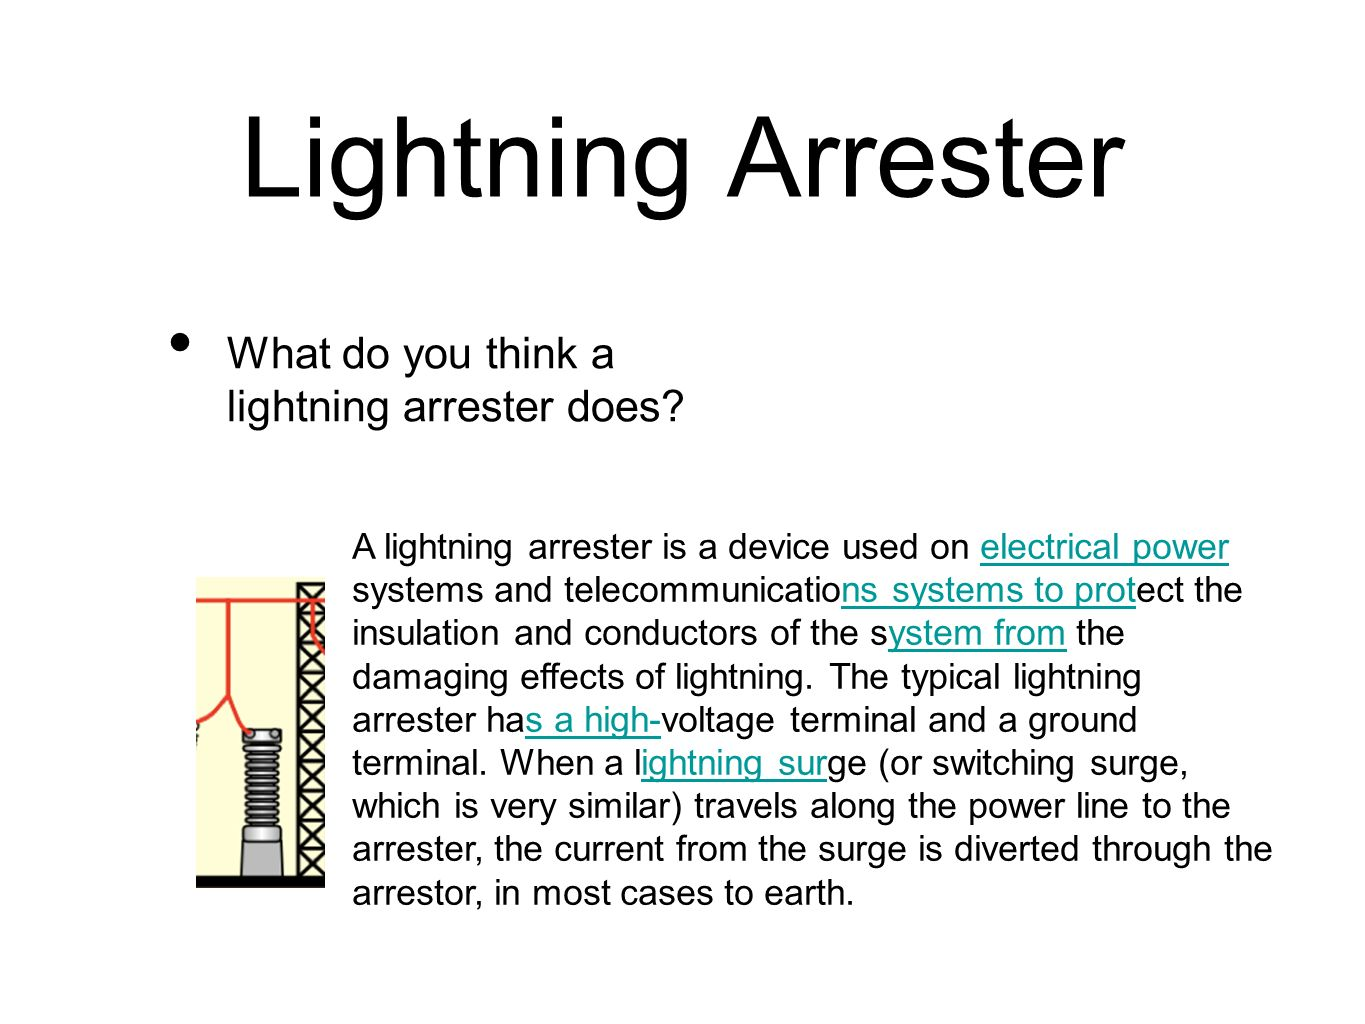 Lightning Arrester What do you think a lightning arrester does